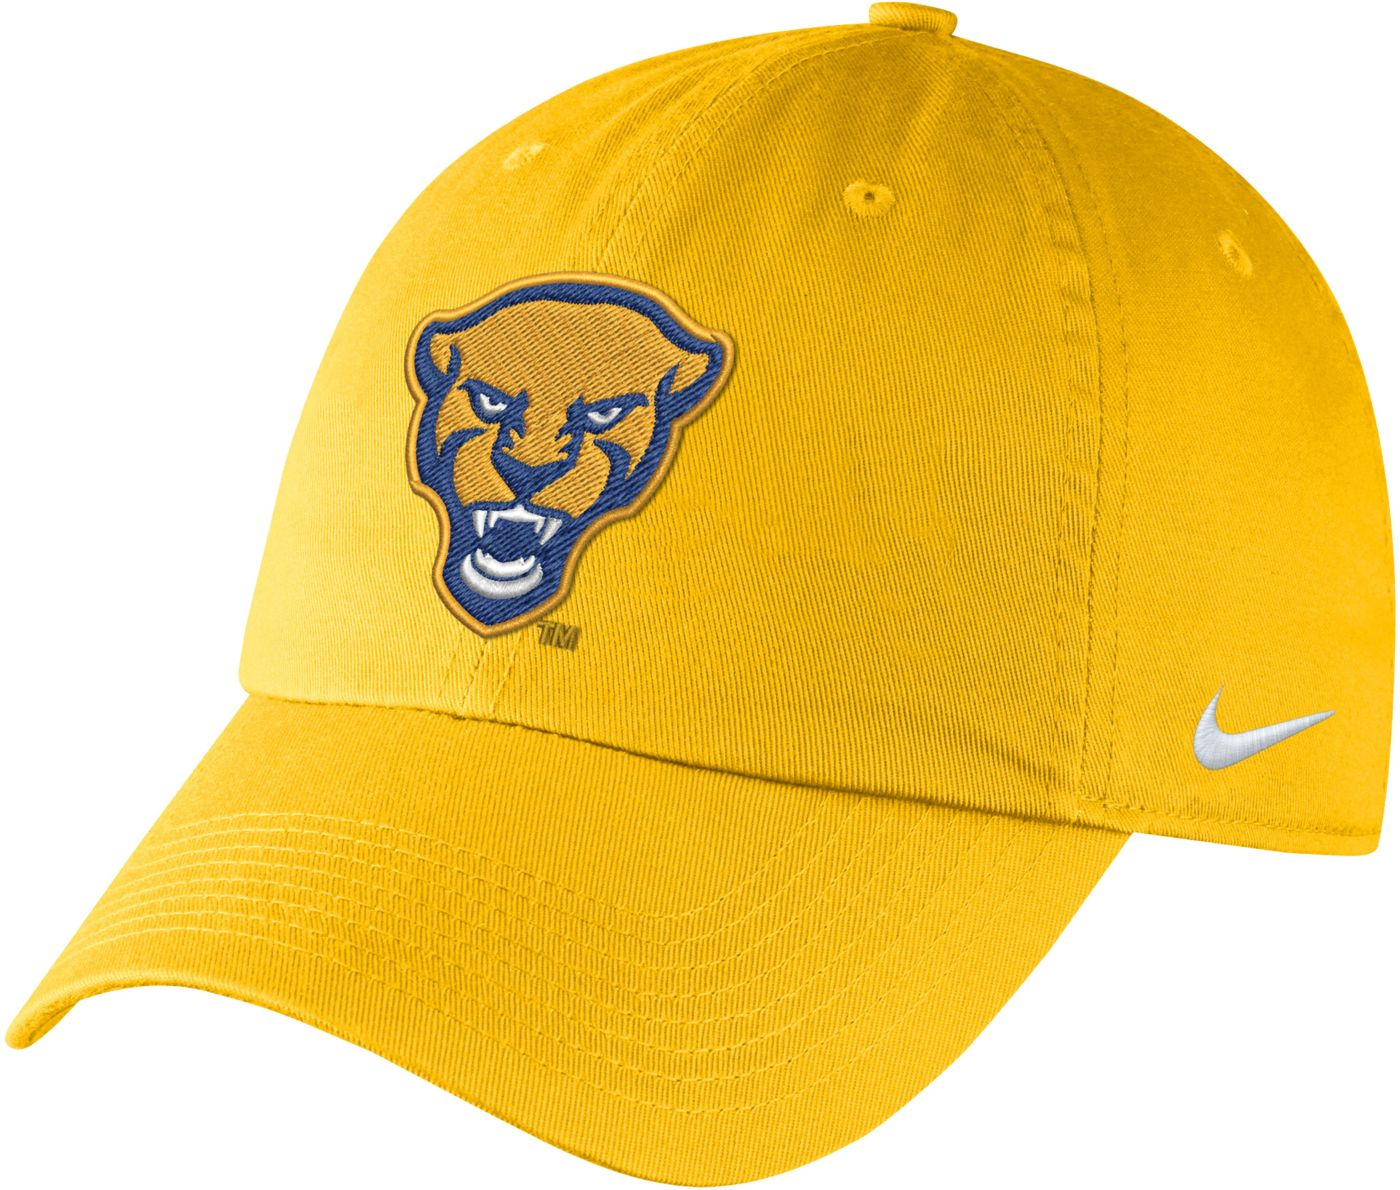 Nike Men's Pitt Panthers Gold Unstructured Adjustable Hat